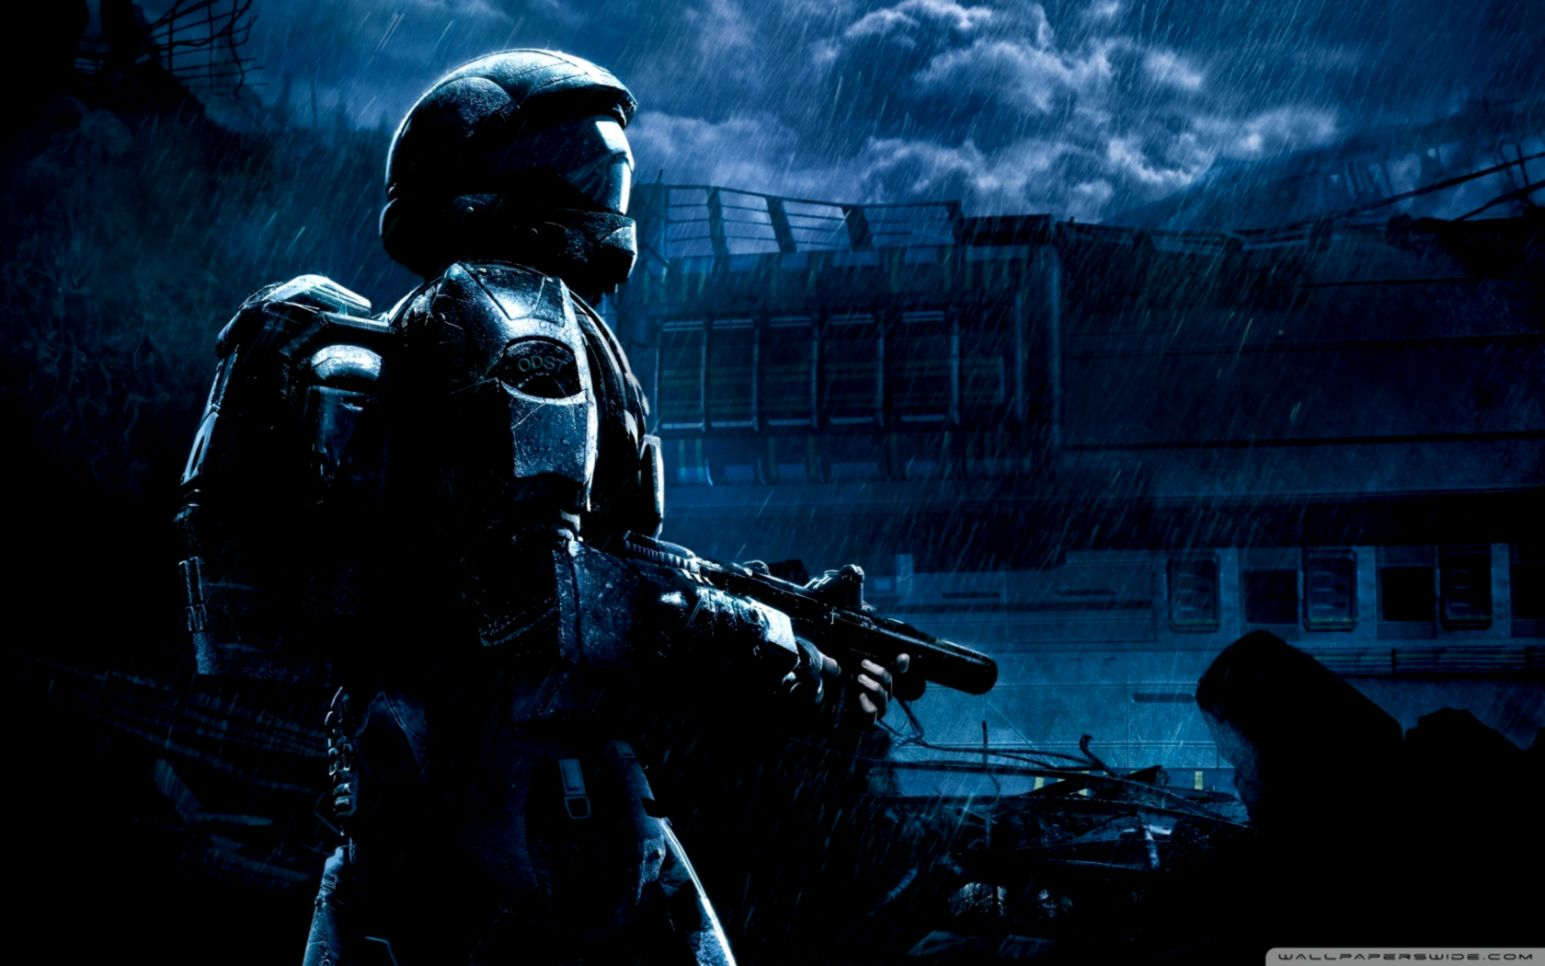 Halo 3 Odst Wallpaper Hd Amazing Wallpapers